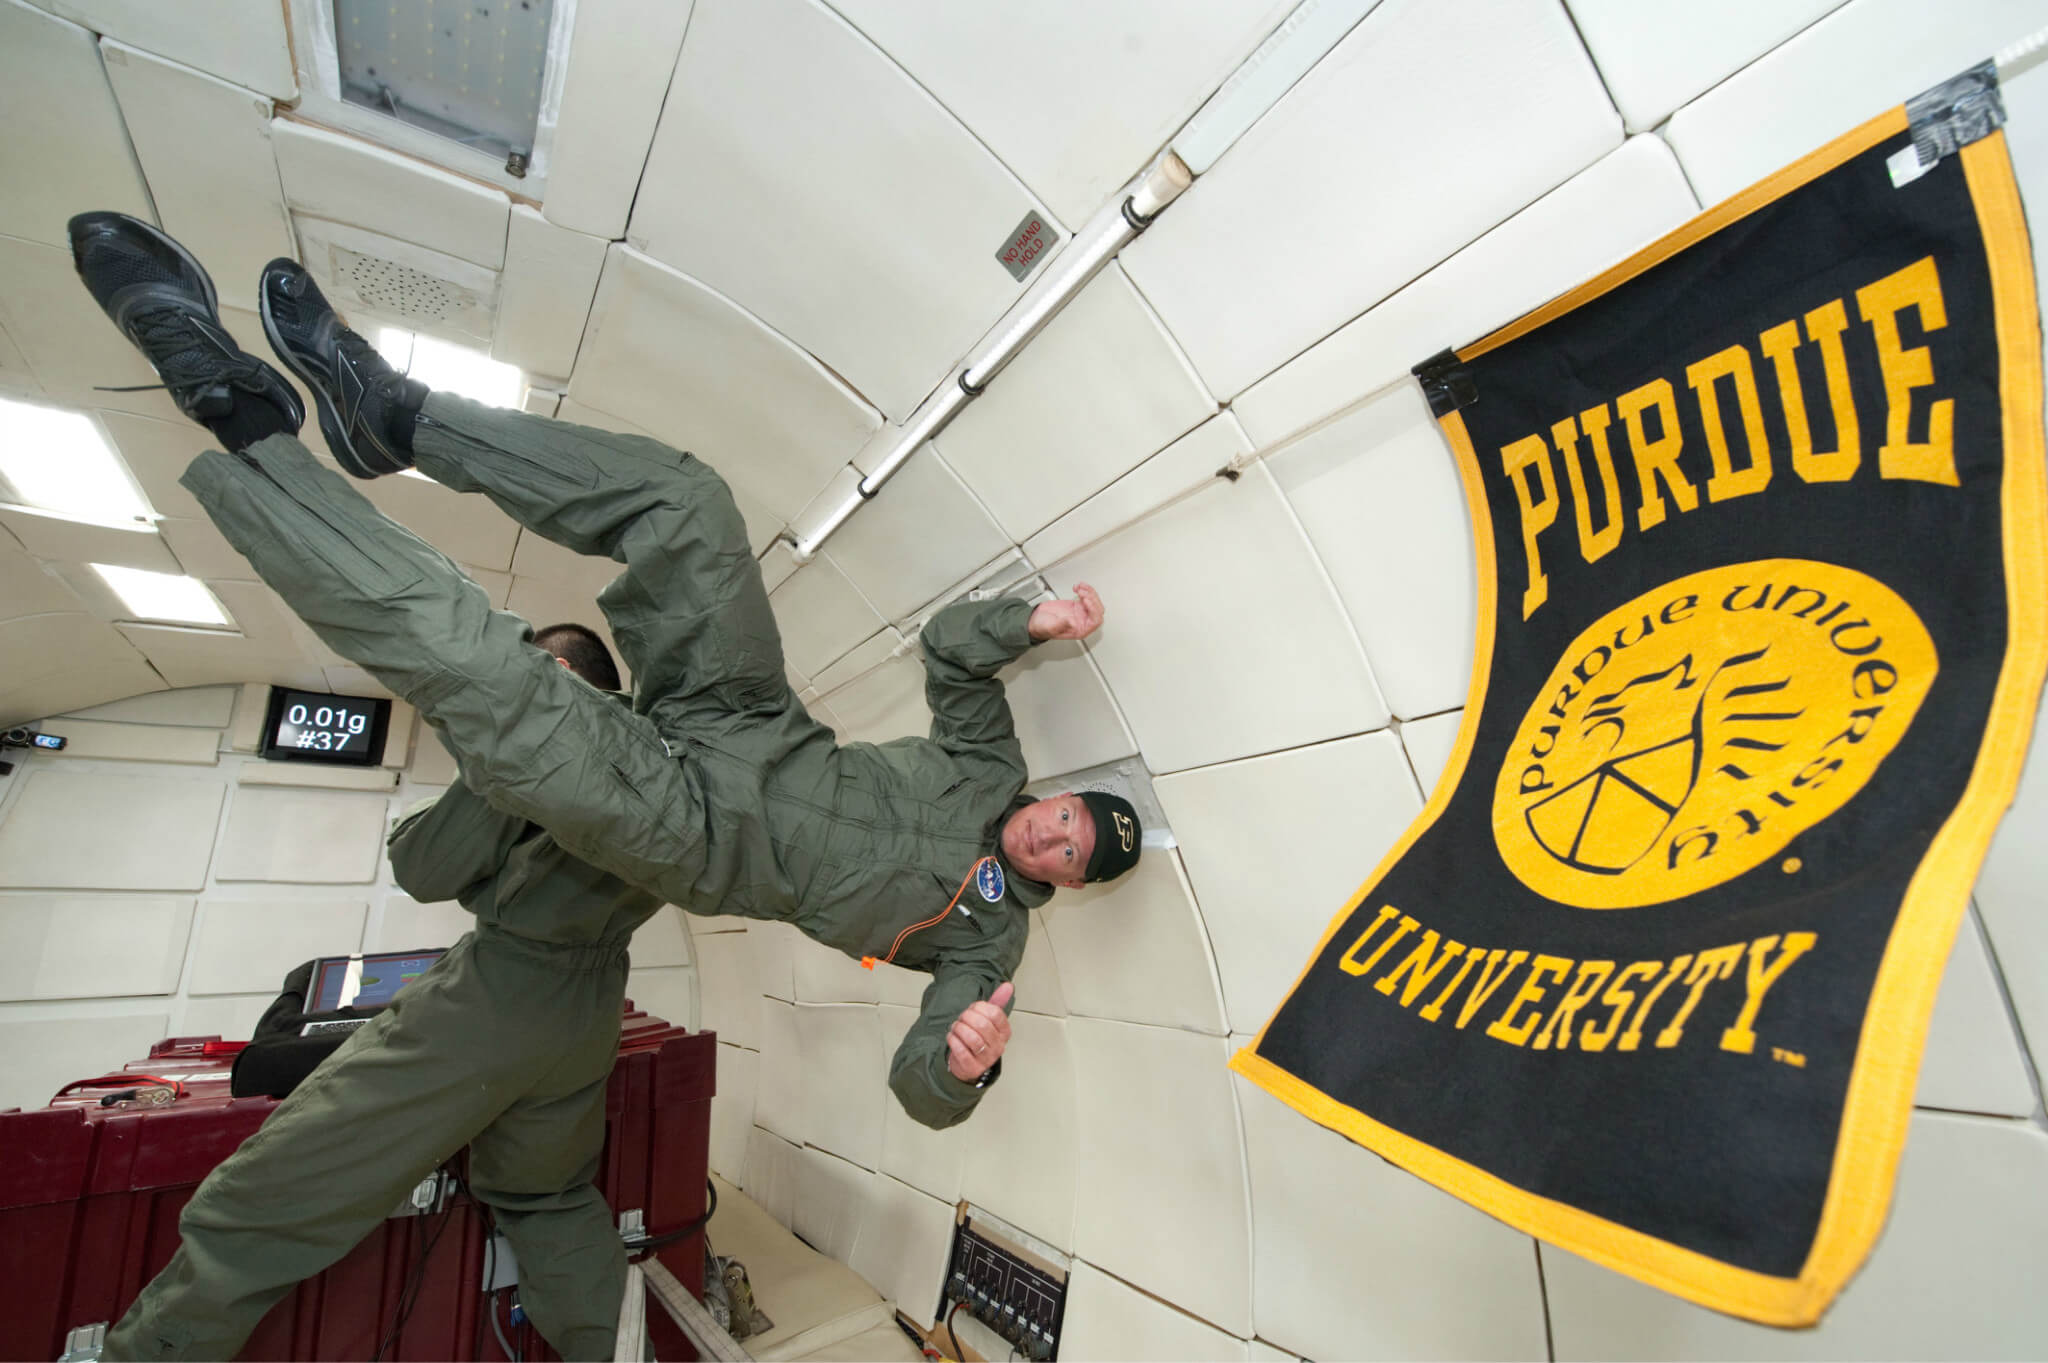 Weightless upside-down wearing Purdue hat next to Purdue flag